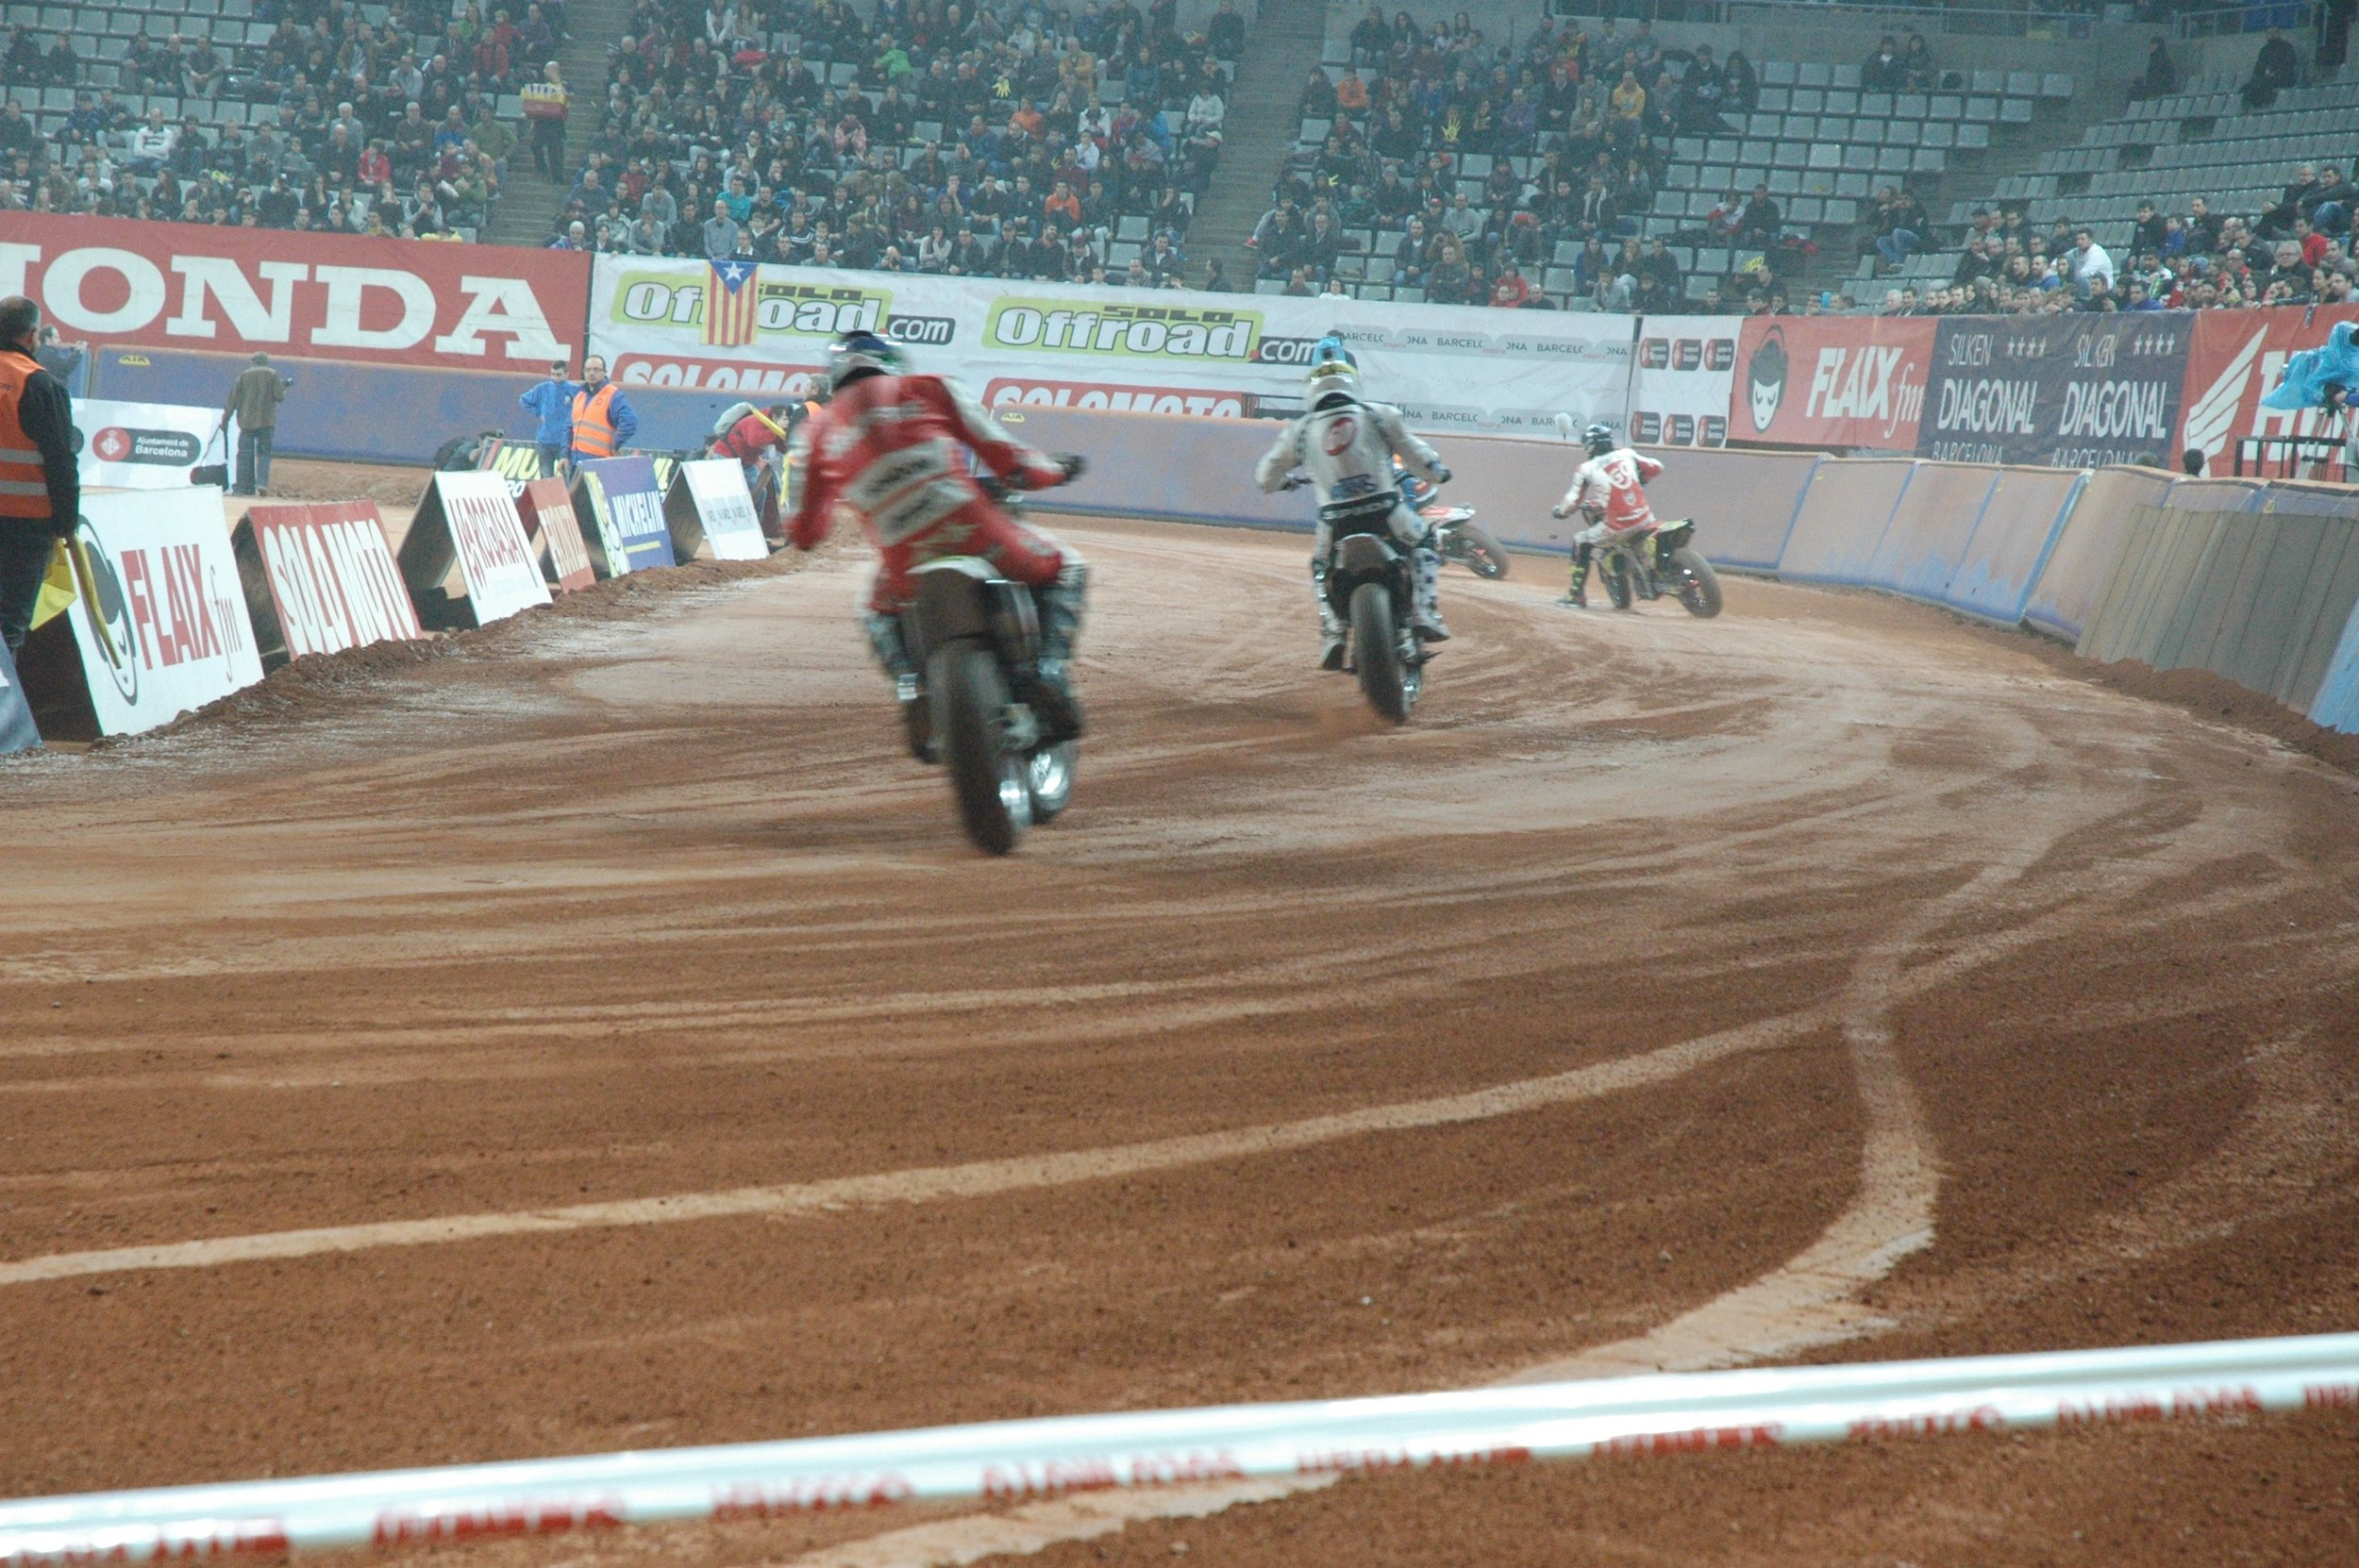 Although the first Barcelona 'Superprestigio' short track race was not an unmitigated success, it proved that you could promote a successful flat track race in Europe. I think it's time for an FIM-sanctioned World Championship in the sport of 'American Flat Track'.